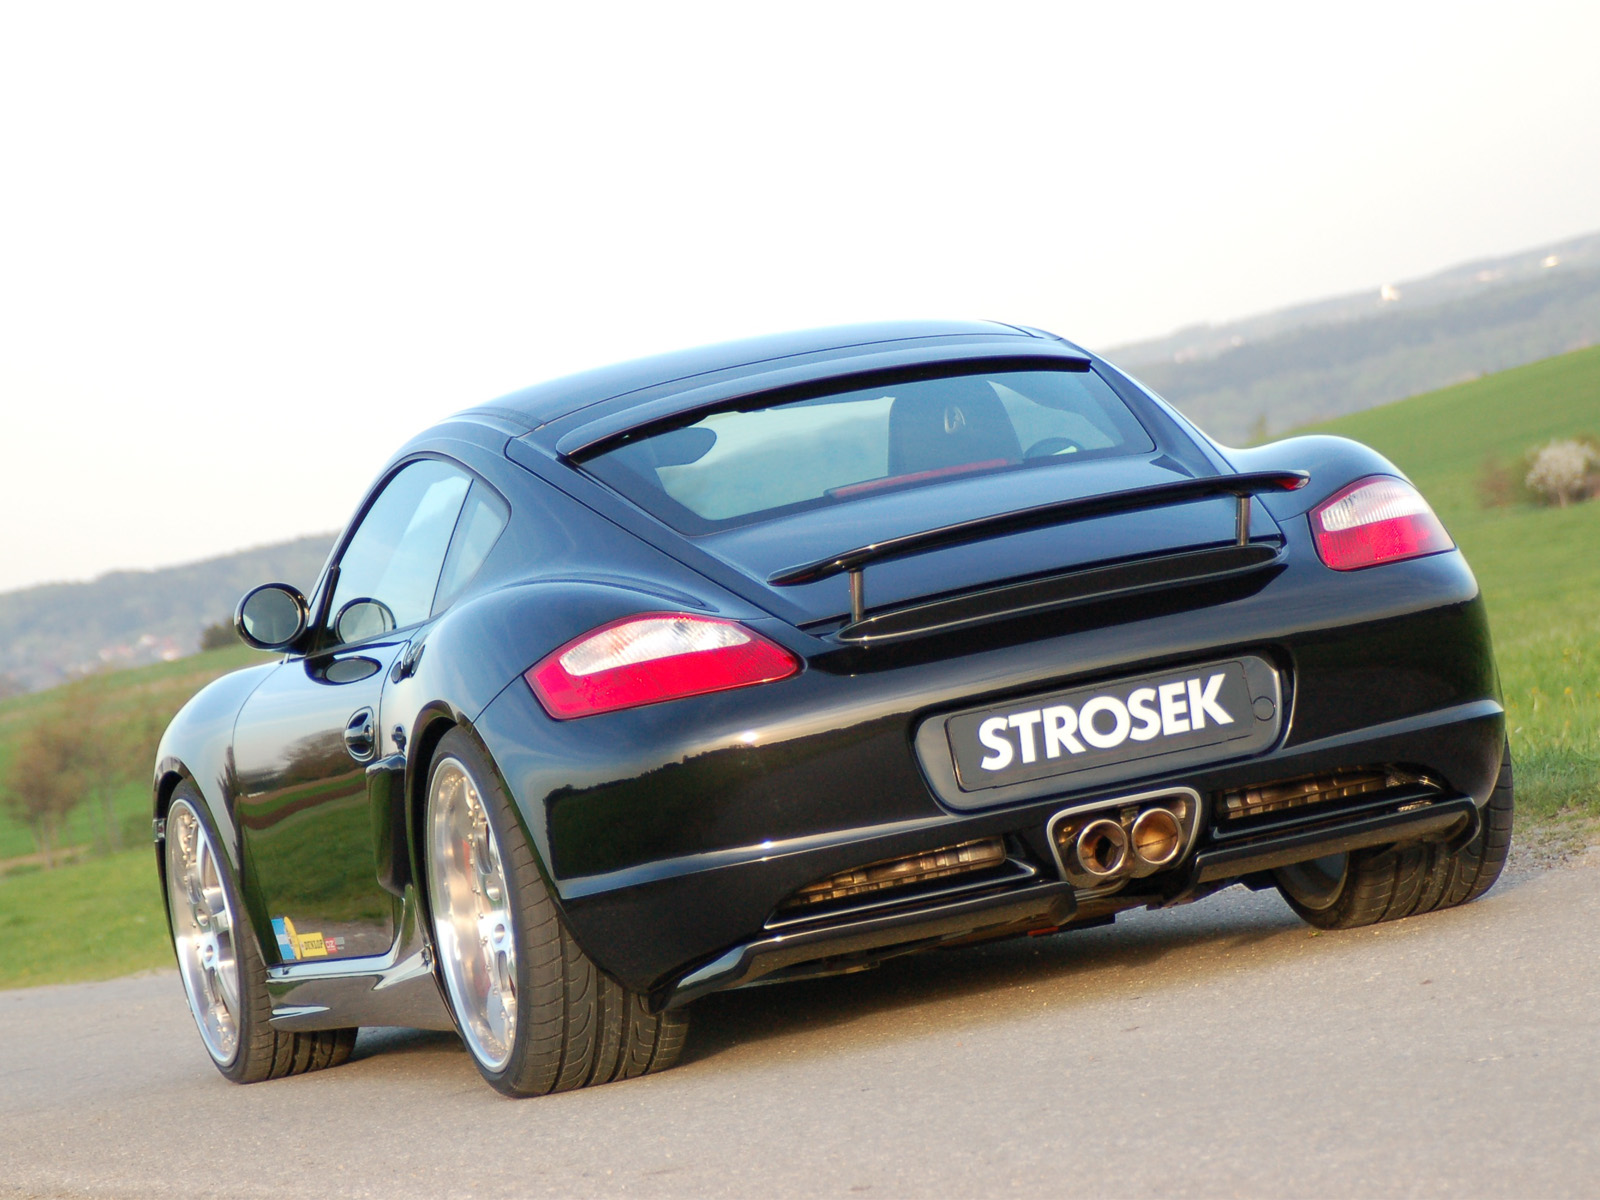 Strosek Porsche Cayman S photo 35318